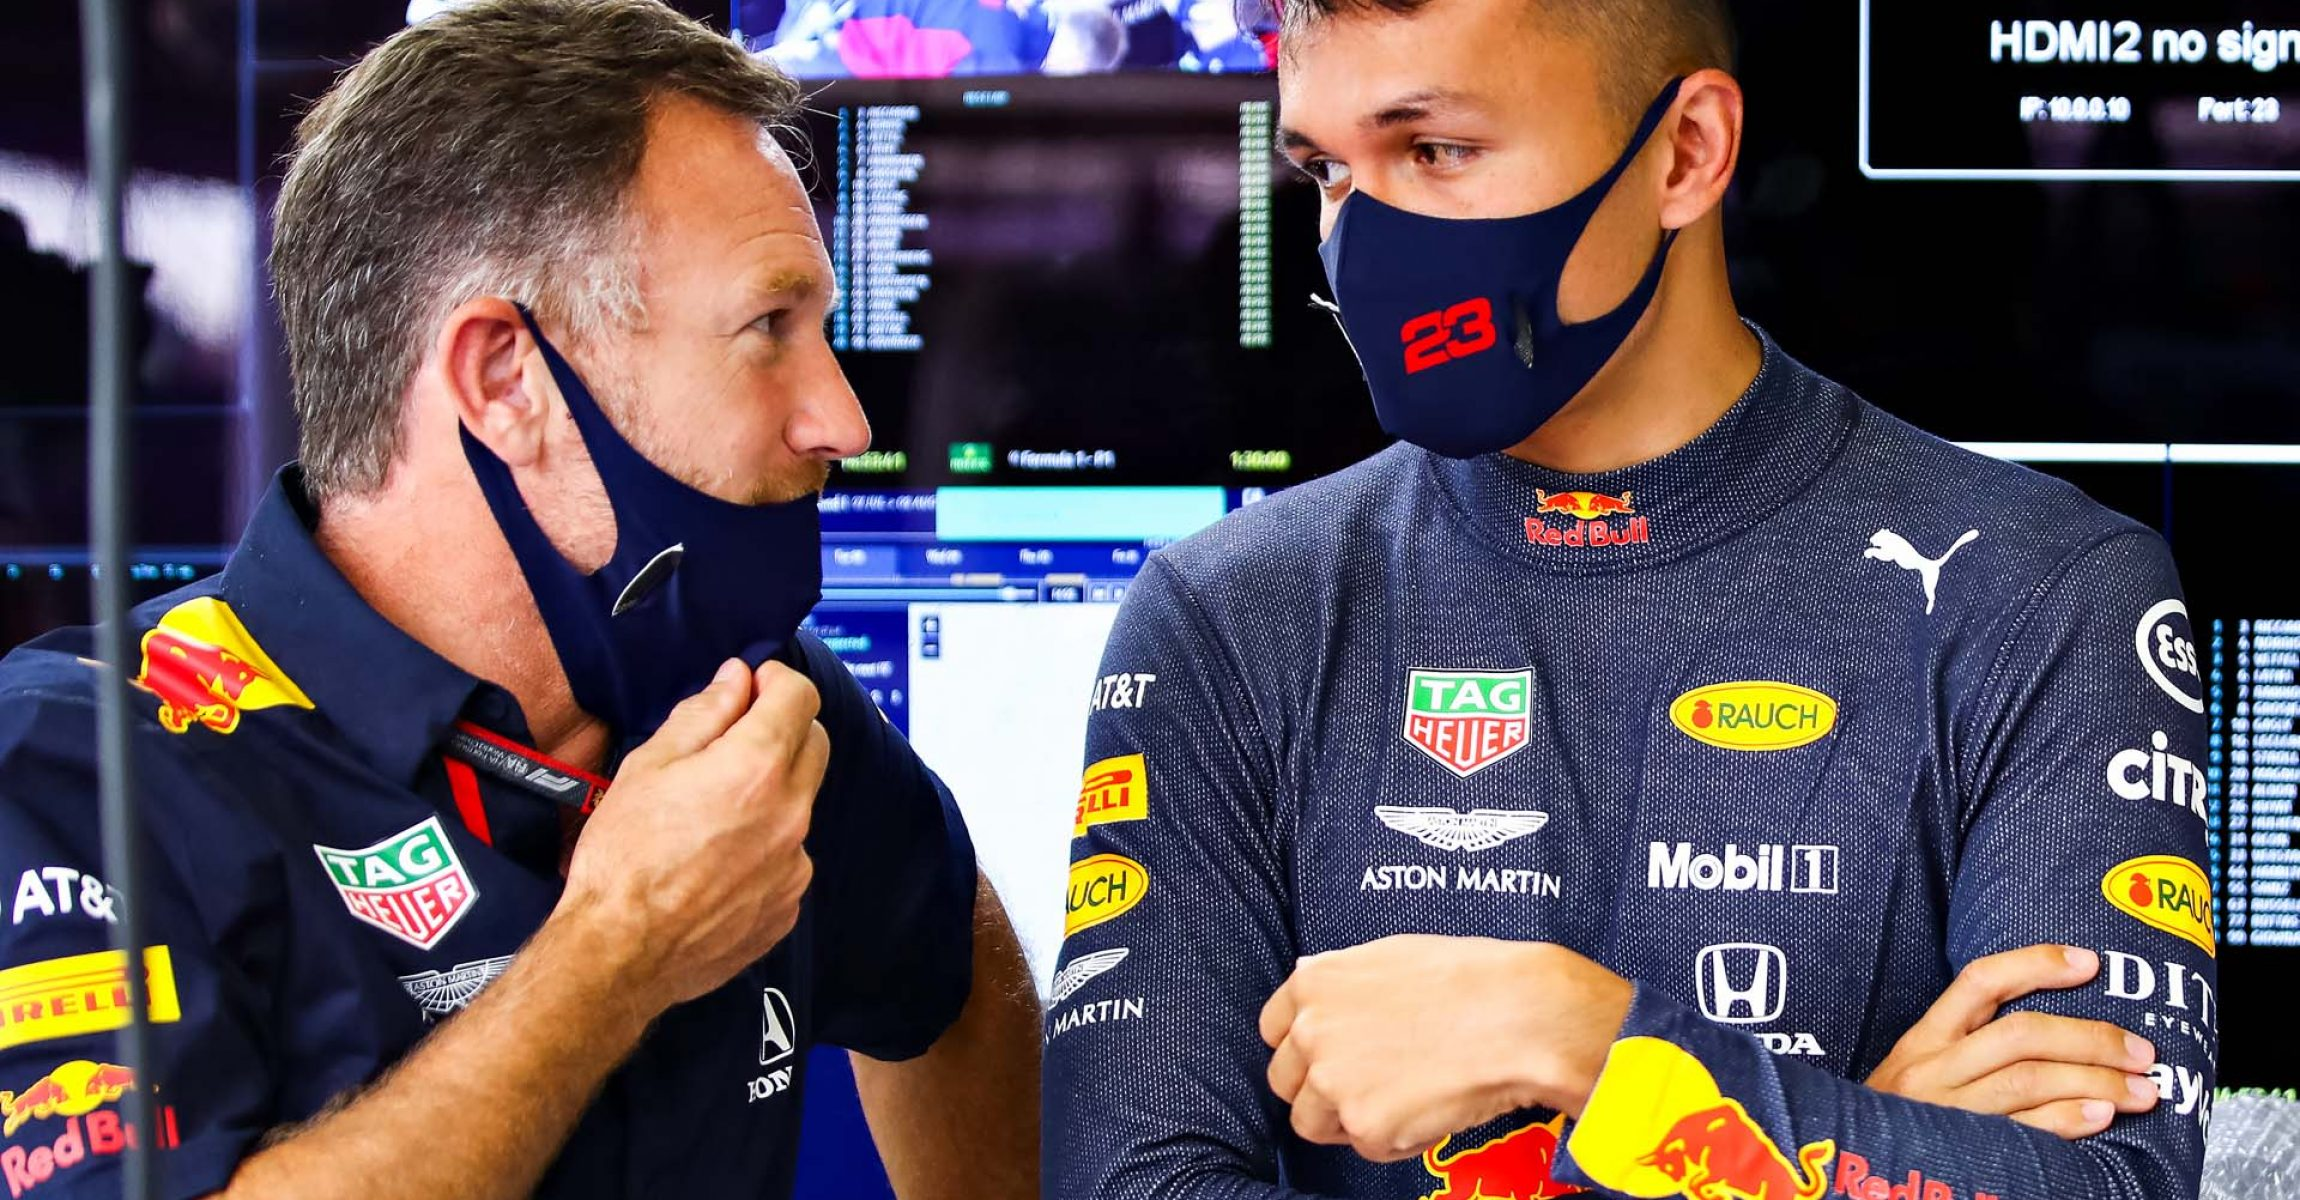 NORTHAMPTON, ENGLAND - JULY 31: Alexander Albon of Thailand and Red Bull Racing and Red Bull Racing Team Principal Christian Horner talk in the garage during practice for the F1 Grand Prix of Great Britain at Silverstone on July 31, 2020 in Northampton, England. (Photo by Mark Thompson/Getty Images,)